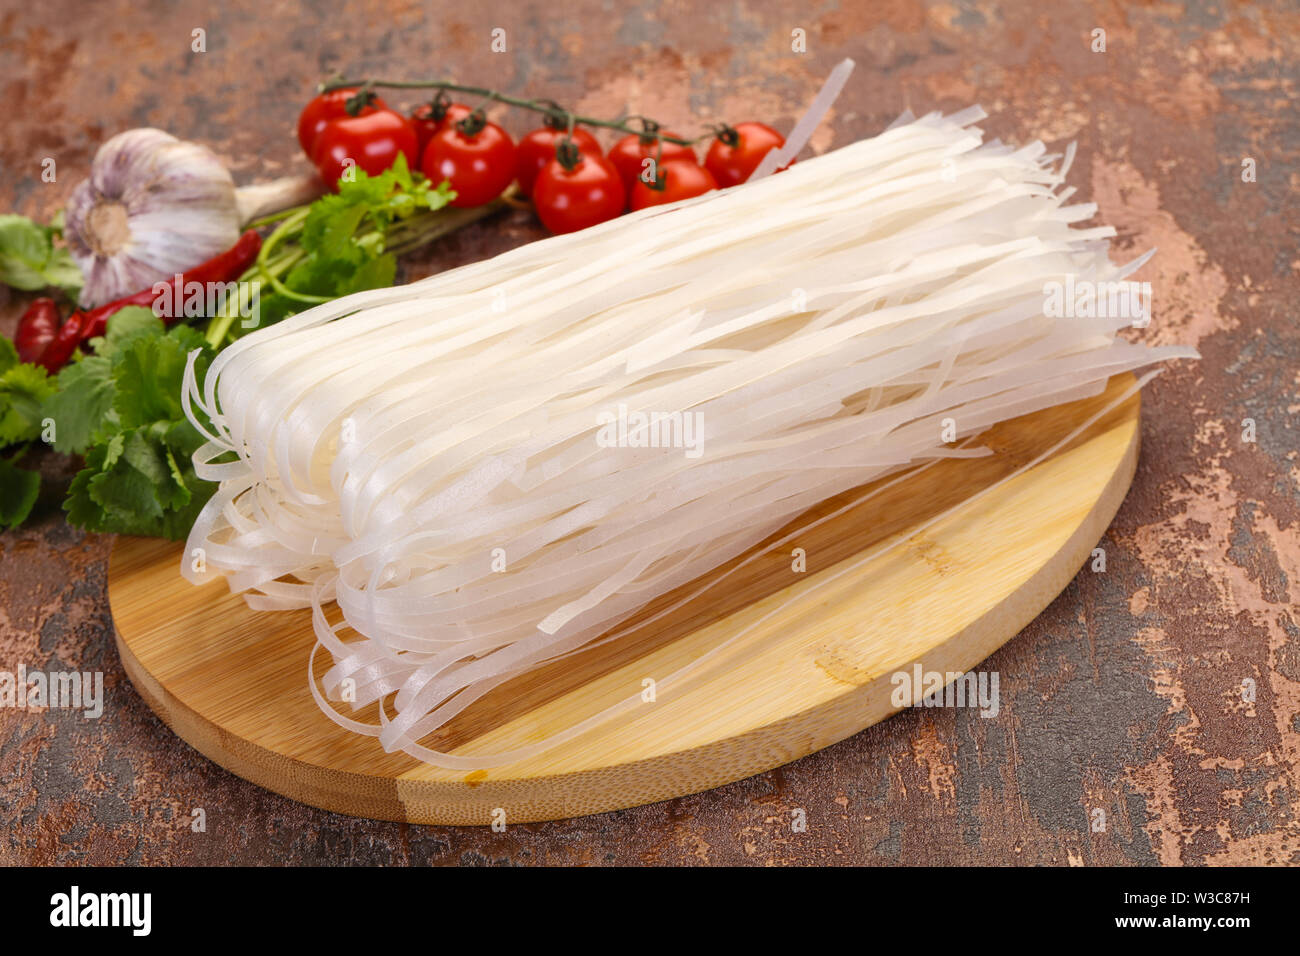 Raw rice noodles served cilantro leaves - Stock Image